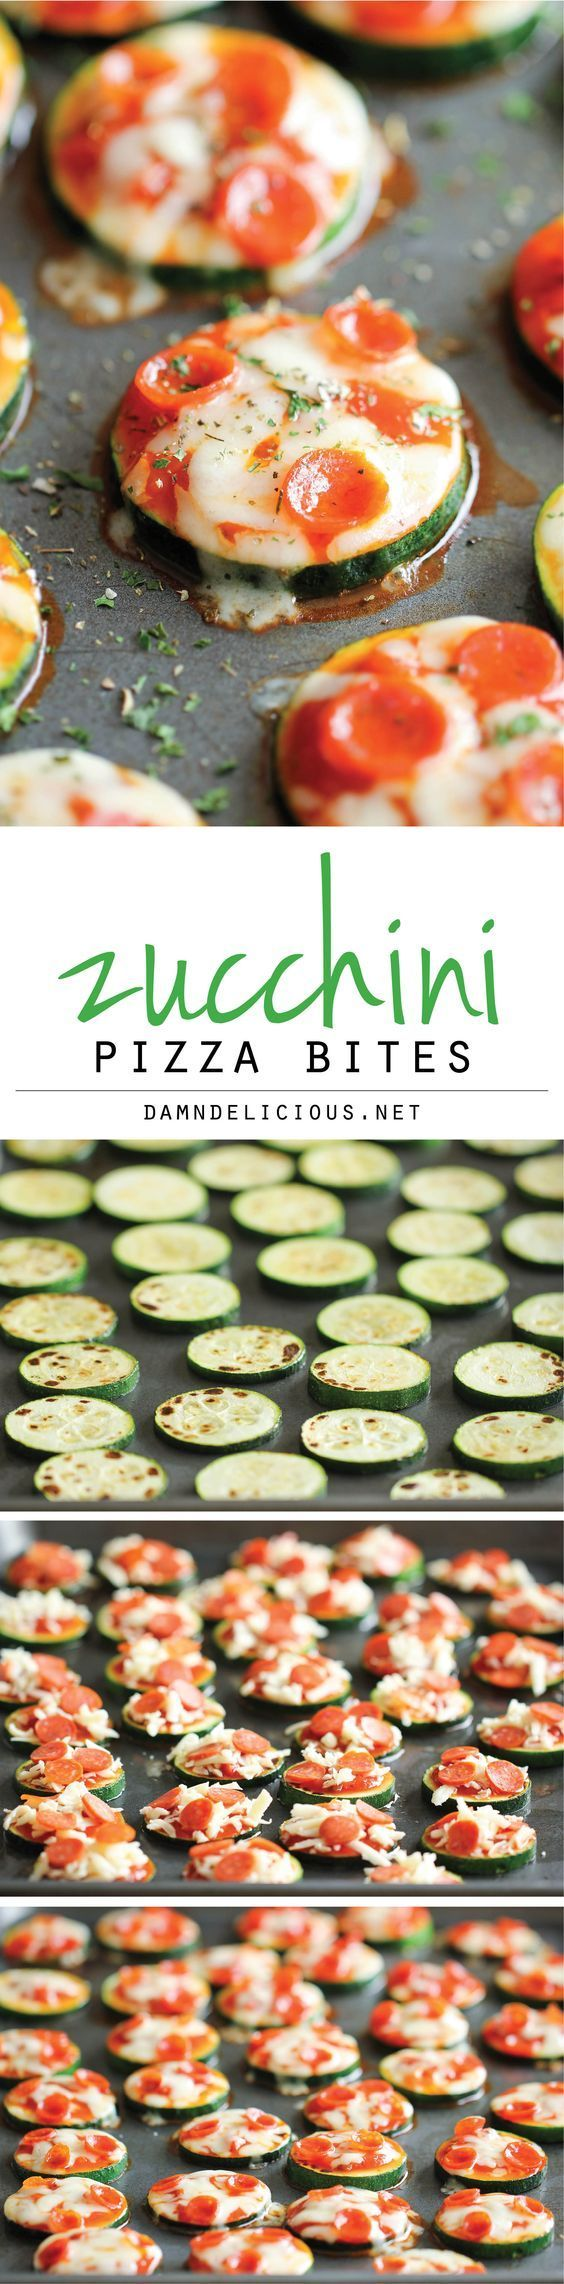 Zucchini Pizza Bites - Healthy, nutritious pizza bites that come together in just 15 minutes with only 5 ingredients!: